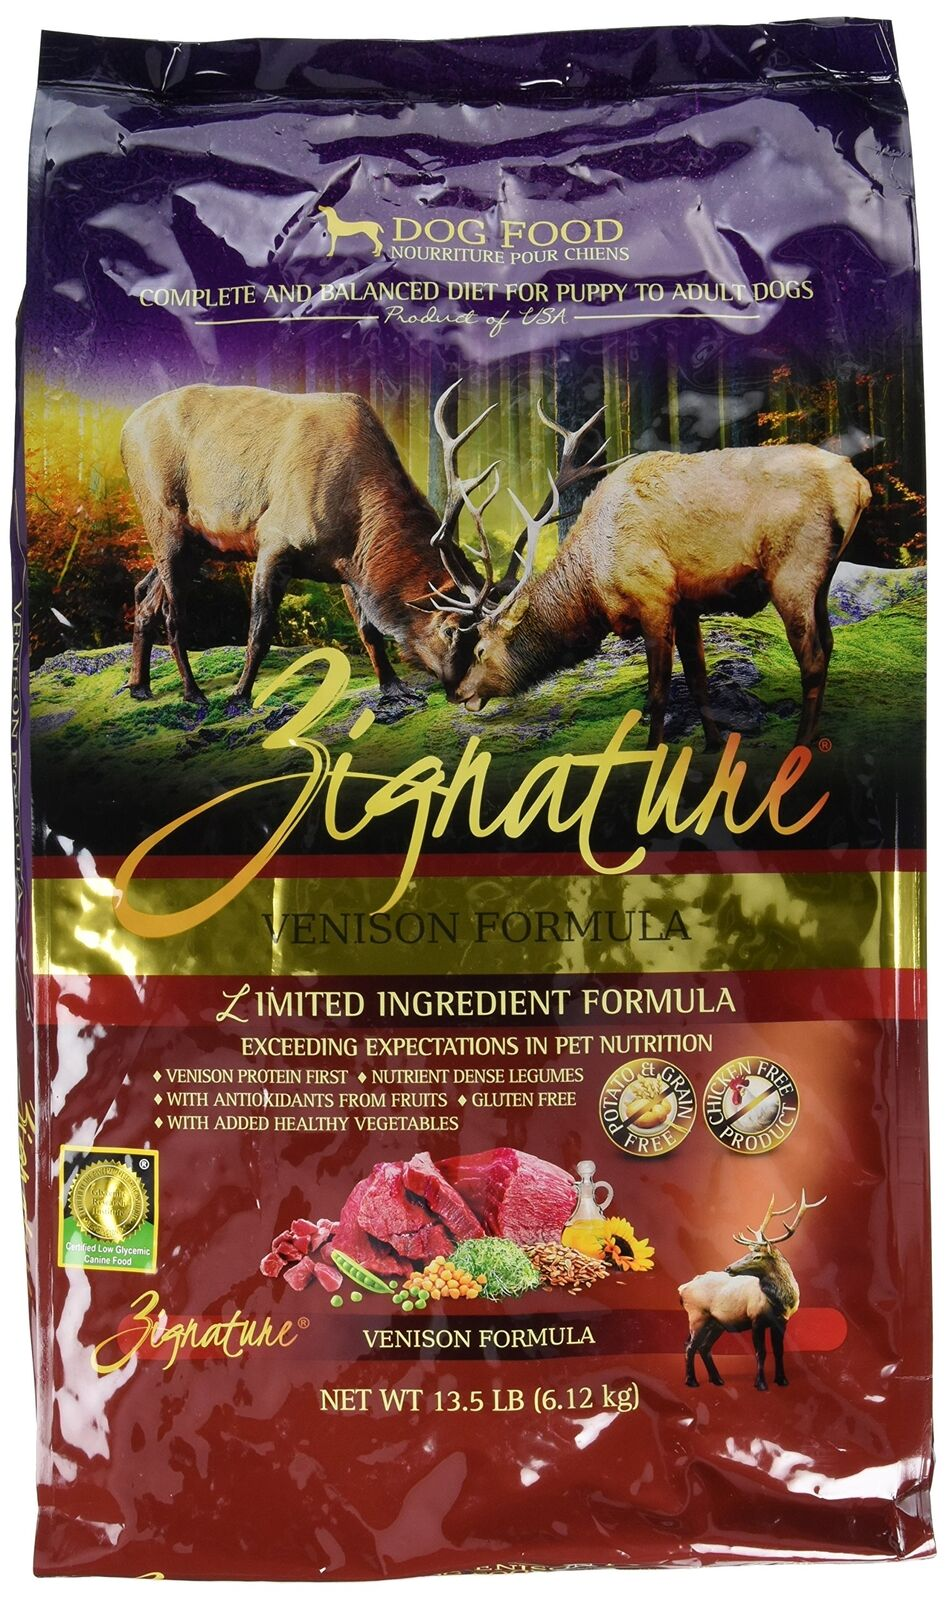 ZIGNATURE Dog Dog Dog Food Venison (13.5 lb) 0bcb3a